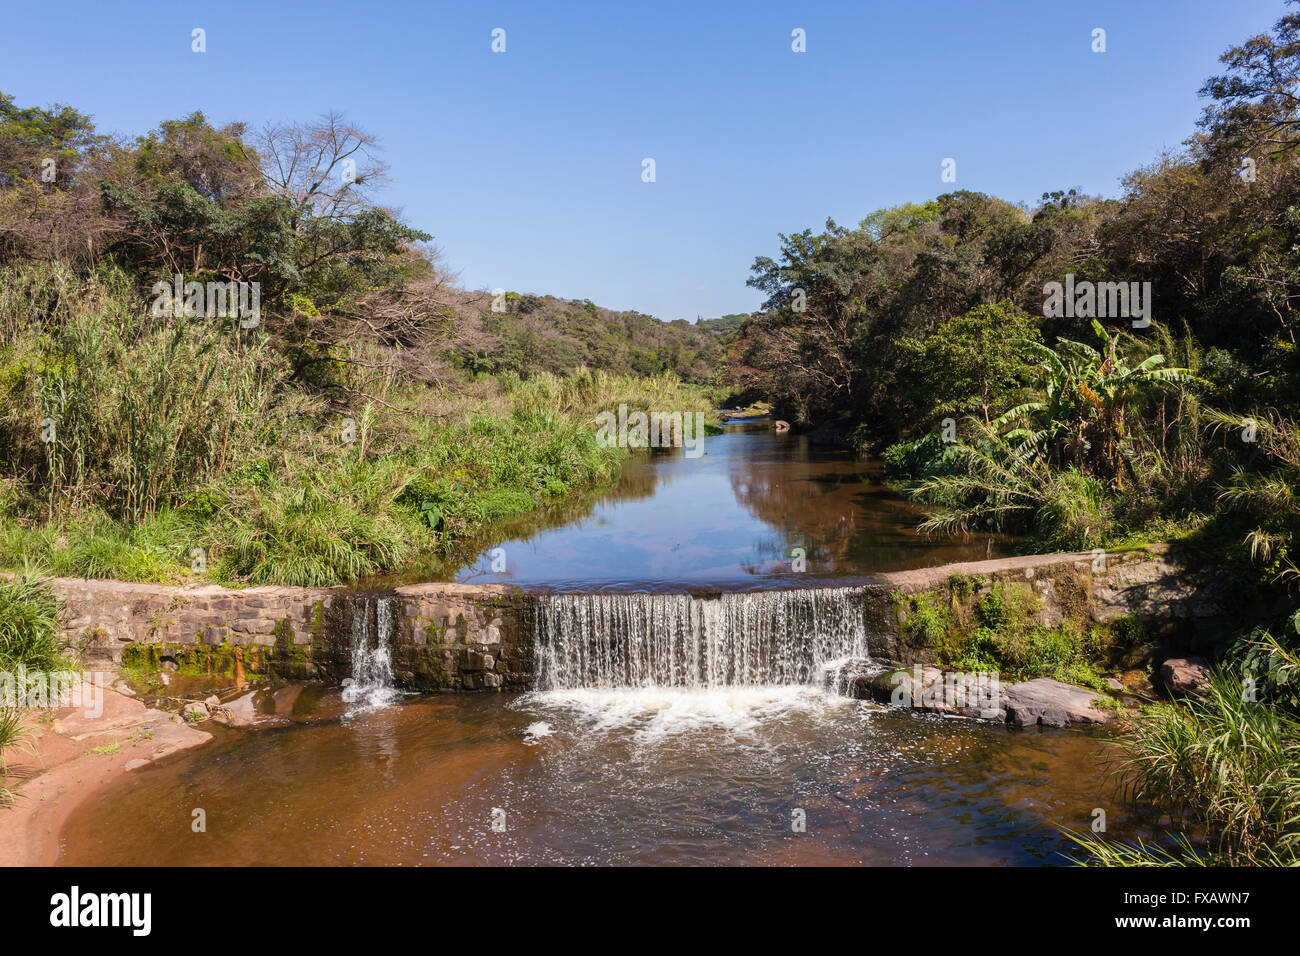 River small waterfall wall weir summer countryside overlooking photo - Stock Image